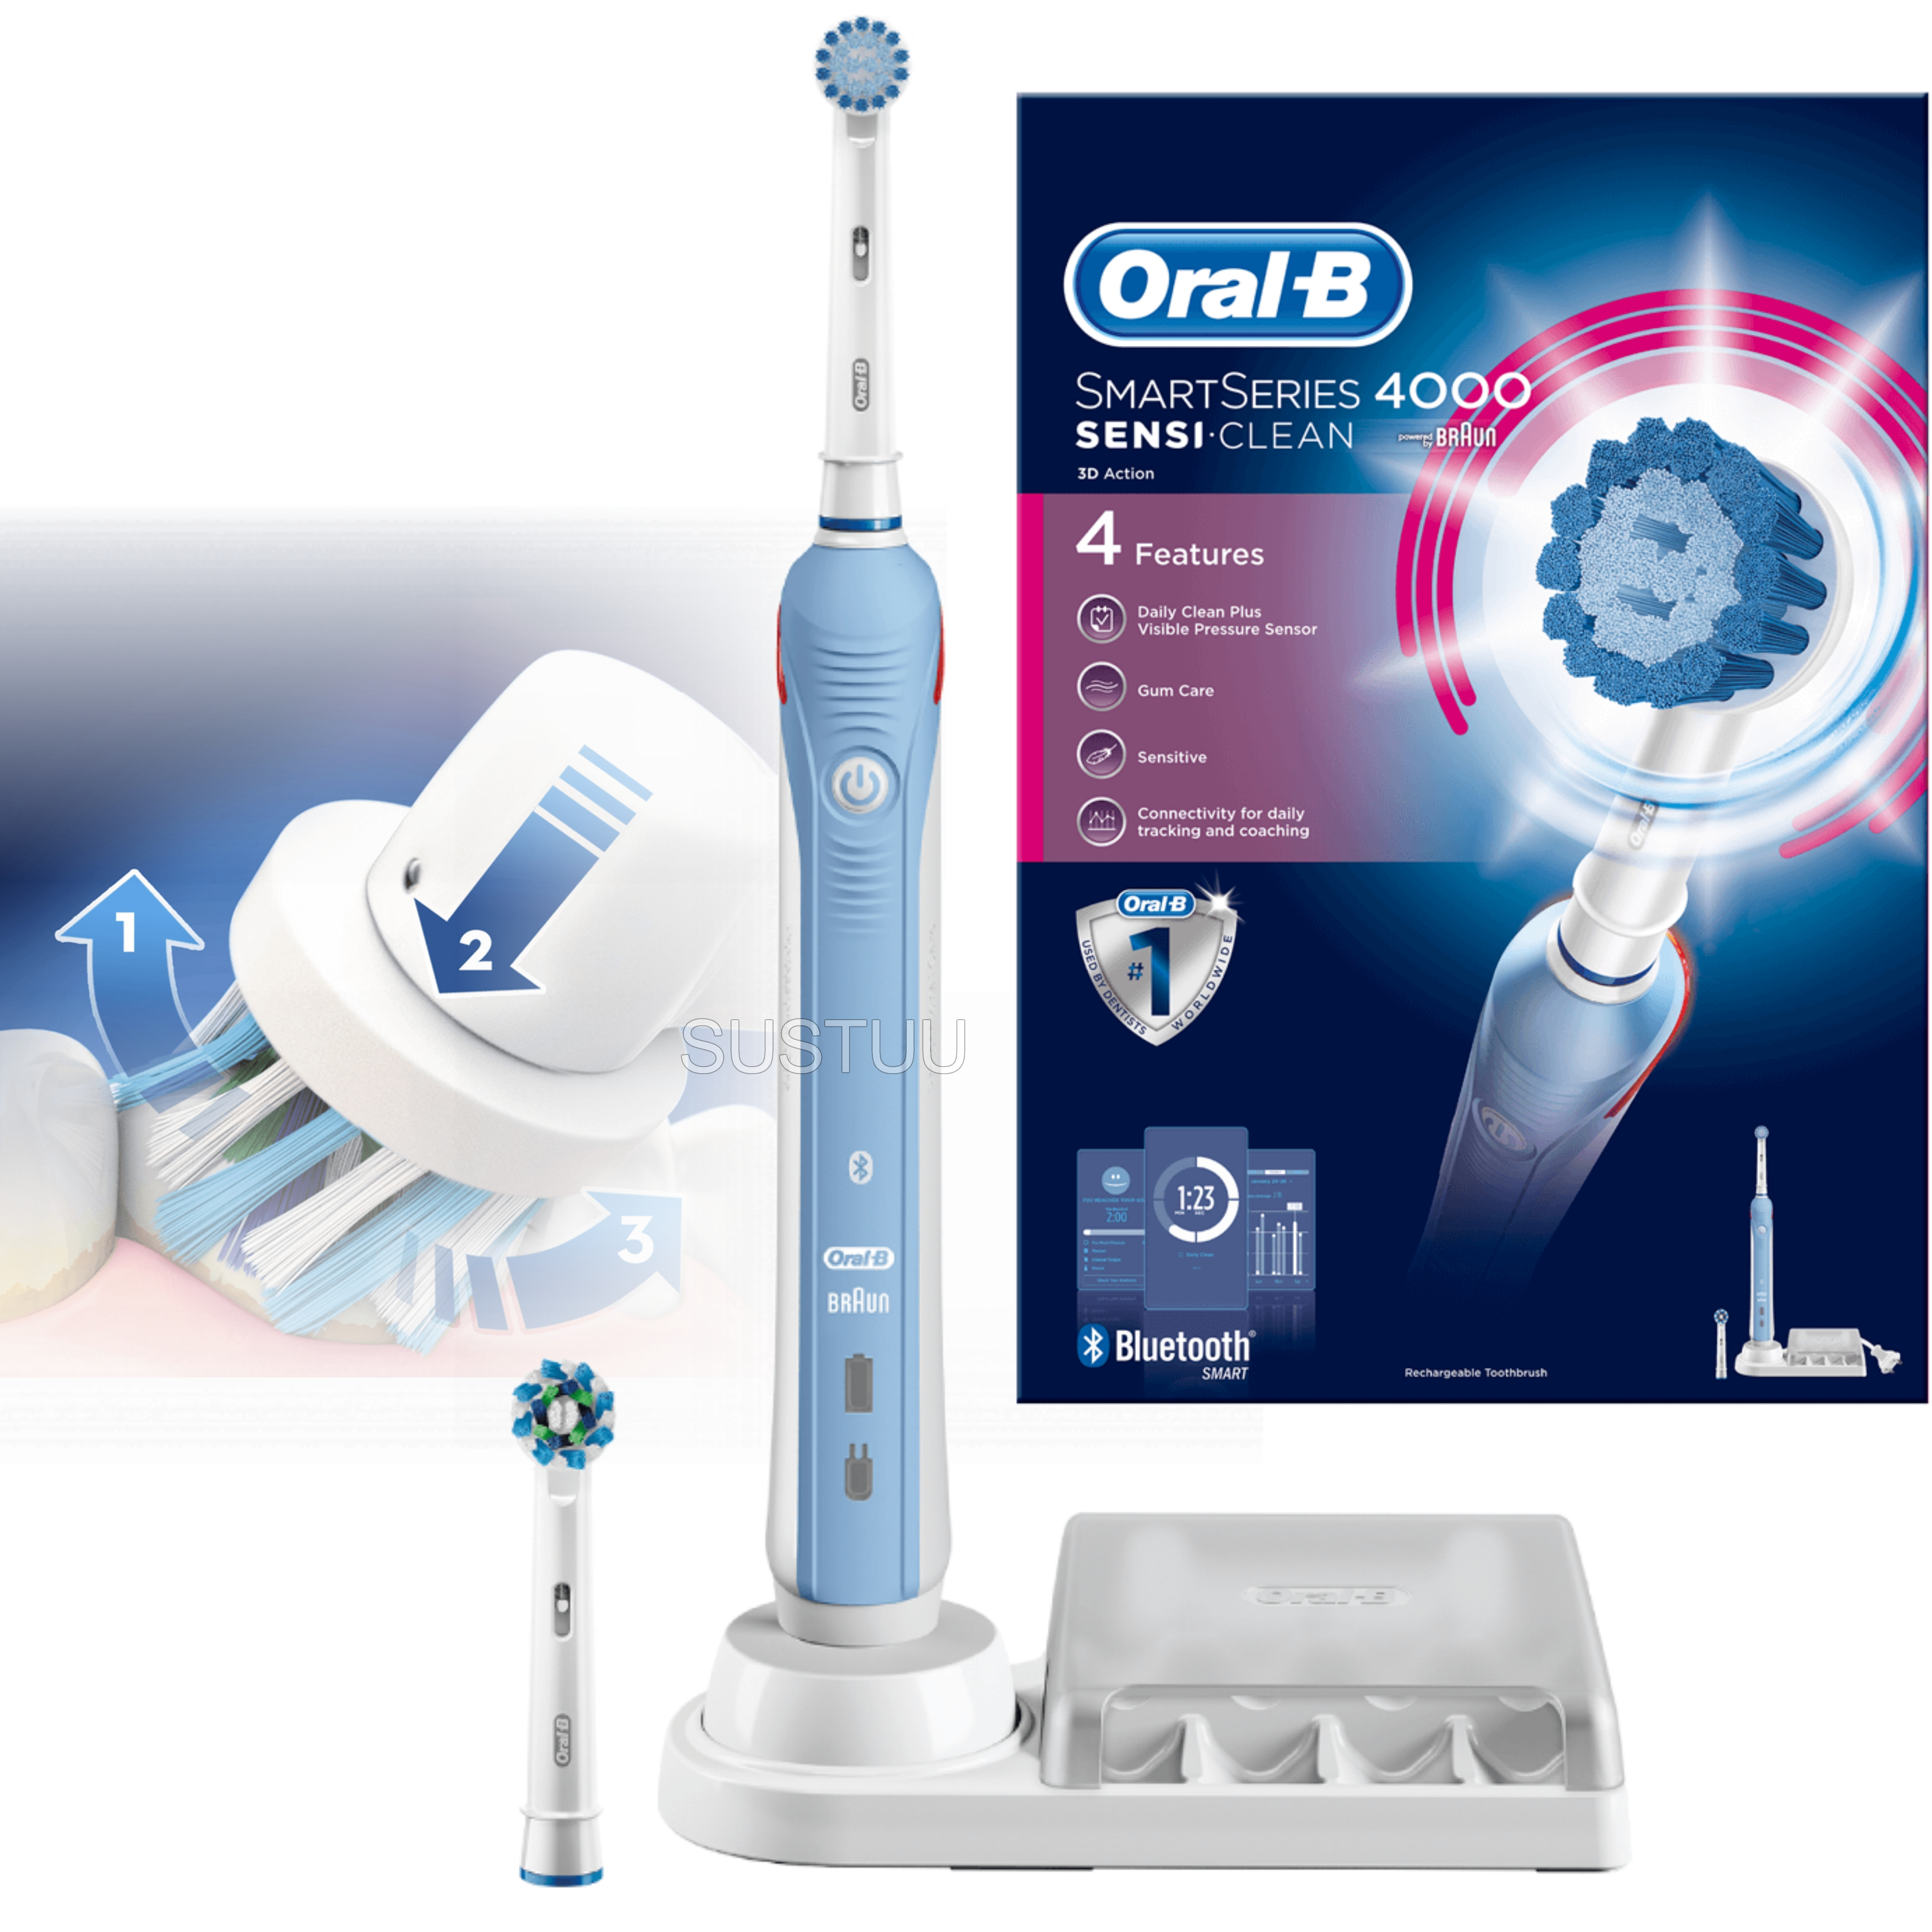 Oral-B Smart Series 4000 Sensi Clean Electric Rechargeable Toothbrush | Bluetooth